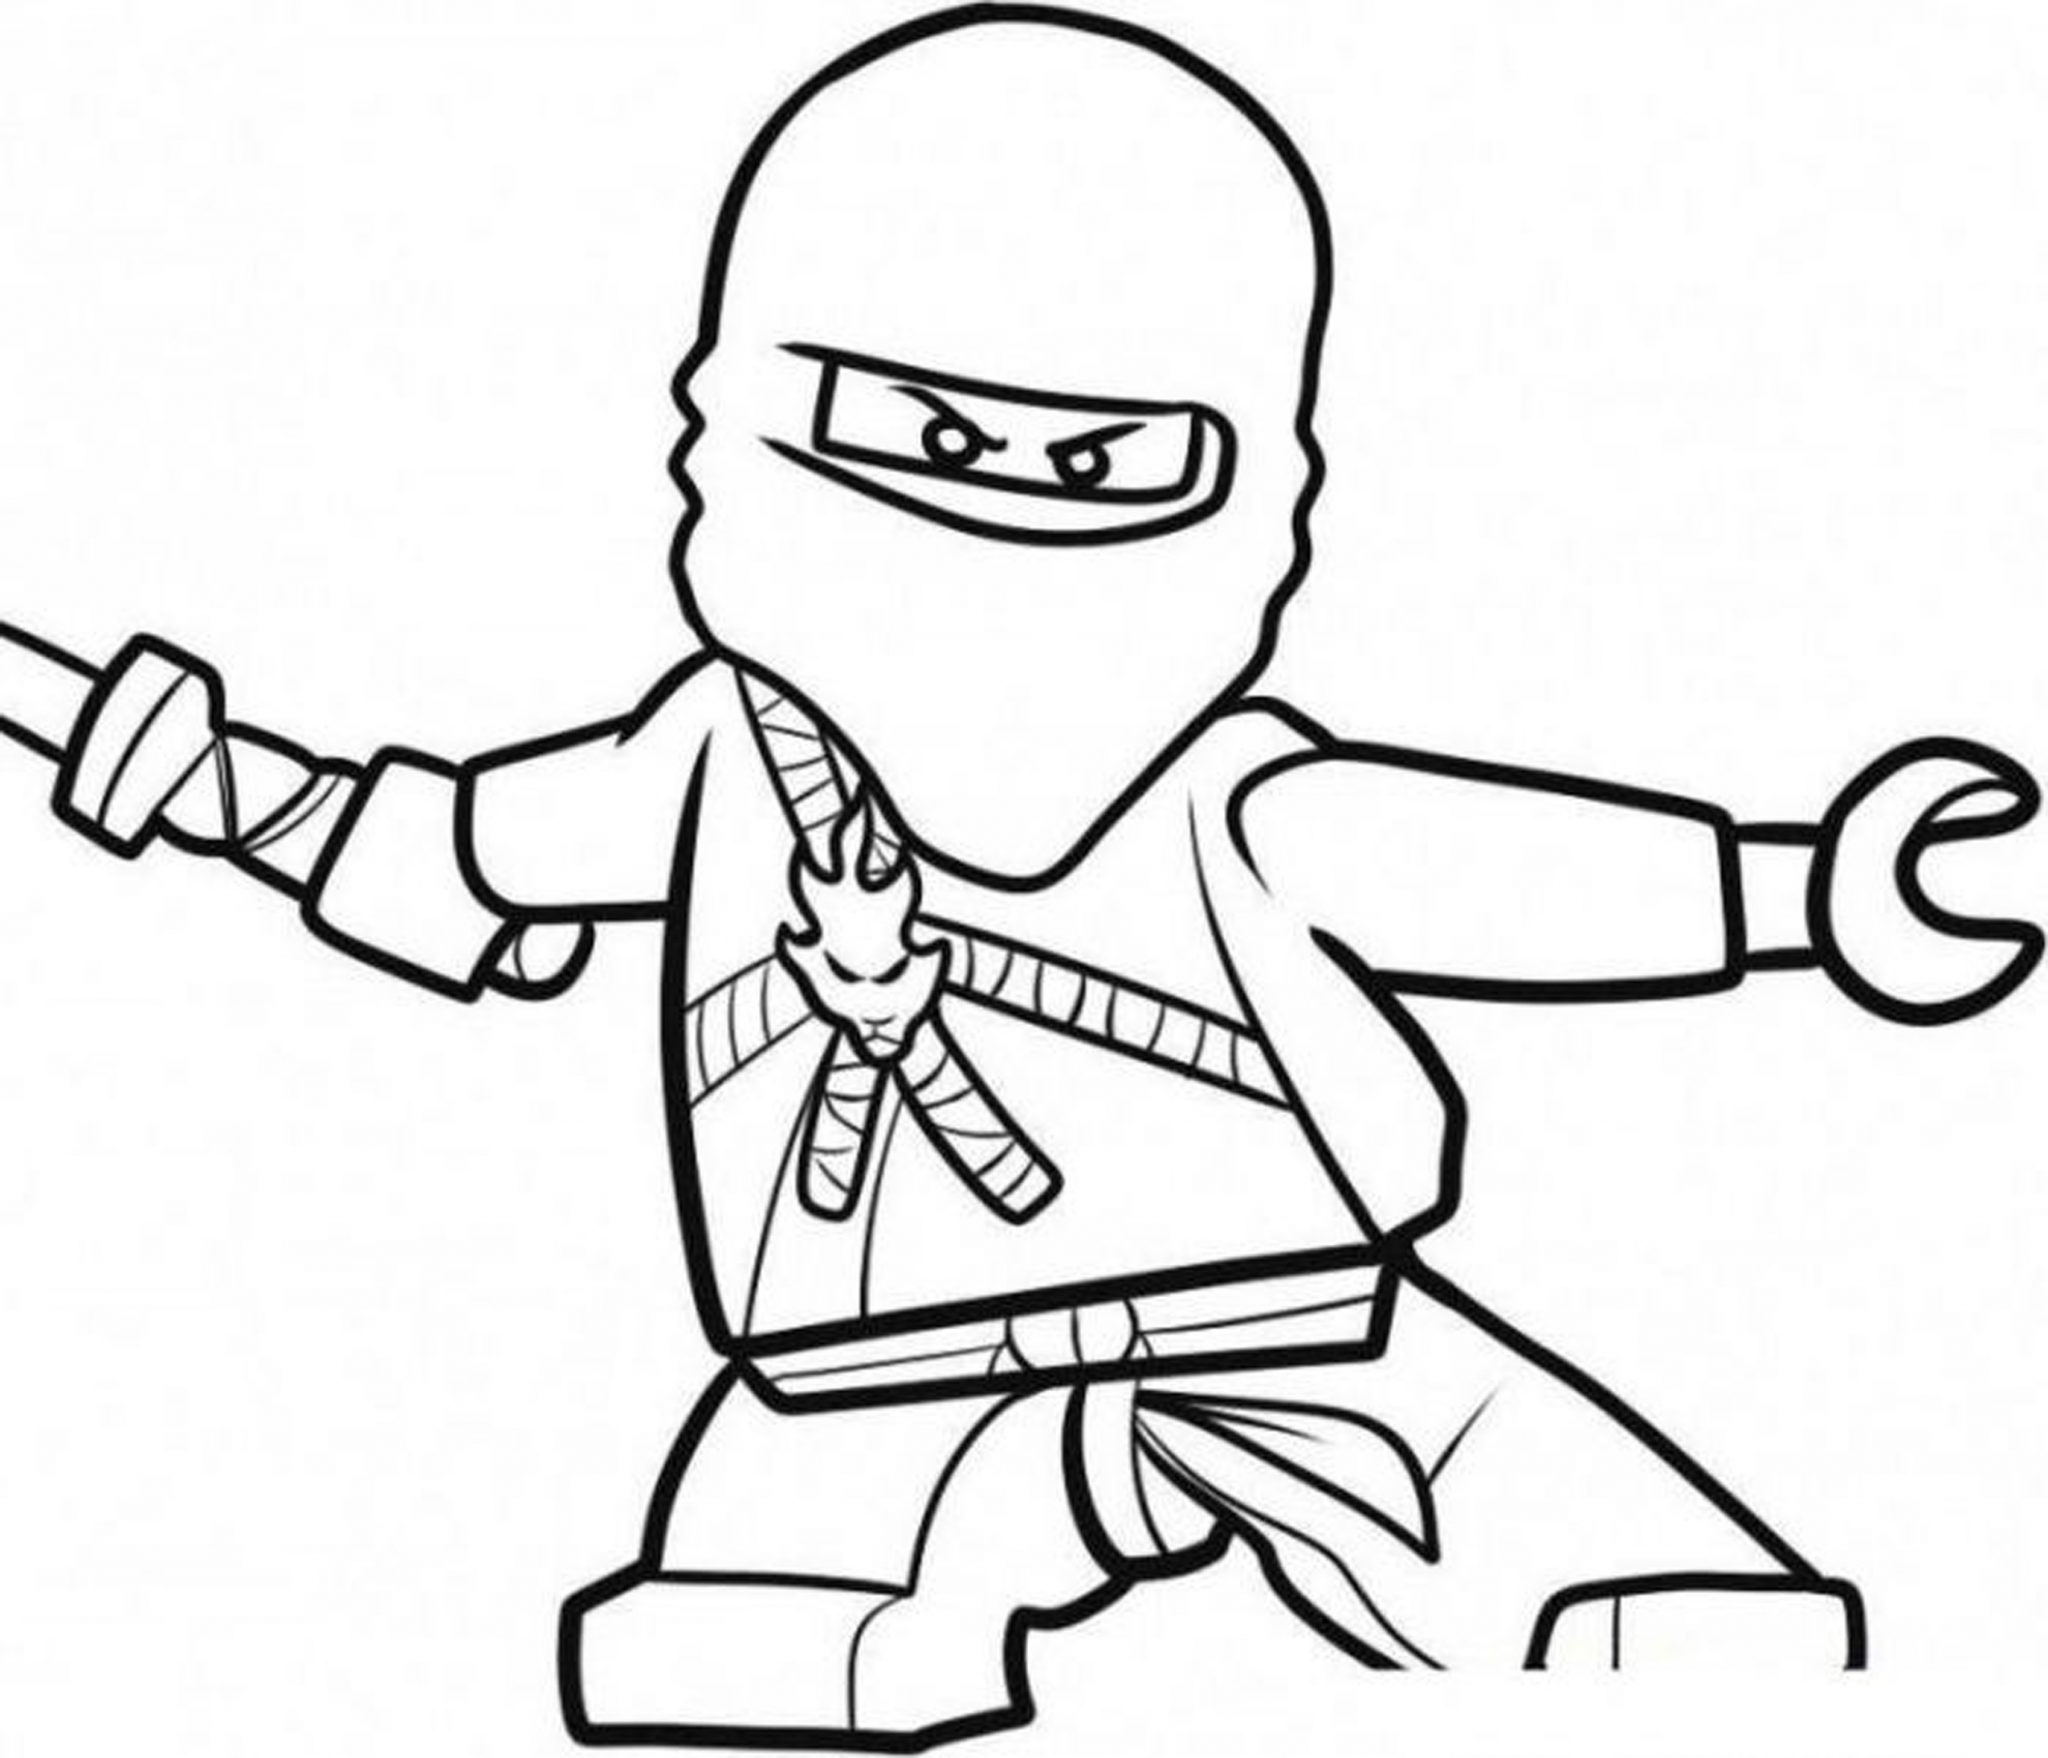 free-coloring-pages-for-boys-lego-ninjago | | BestAppsForKids.com